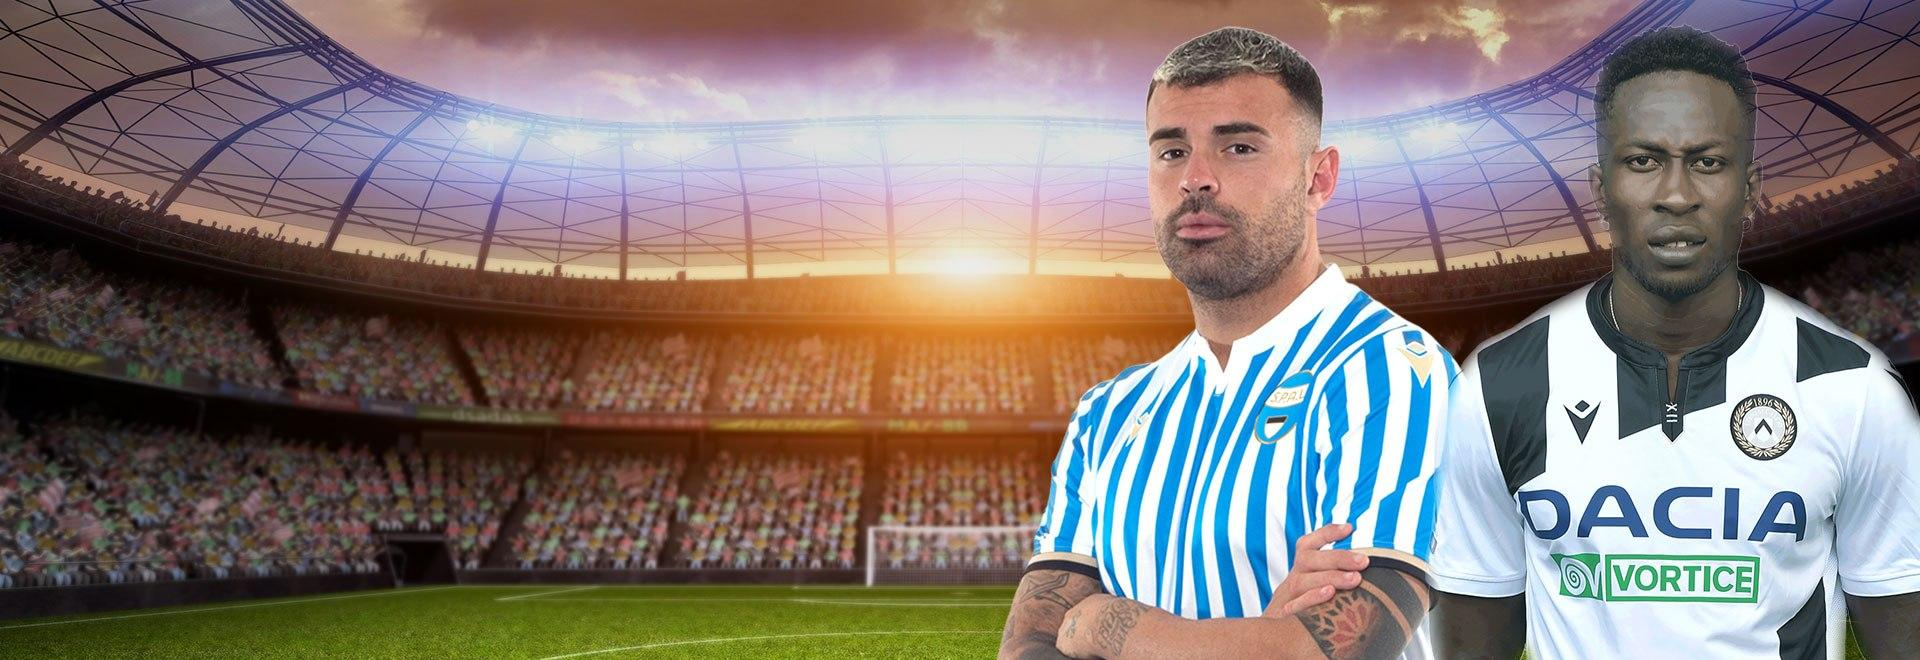 Spal - Udinese. 31a g.